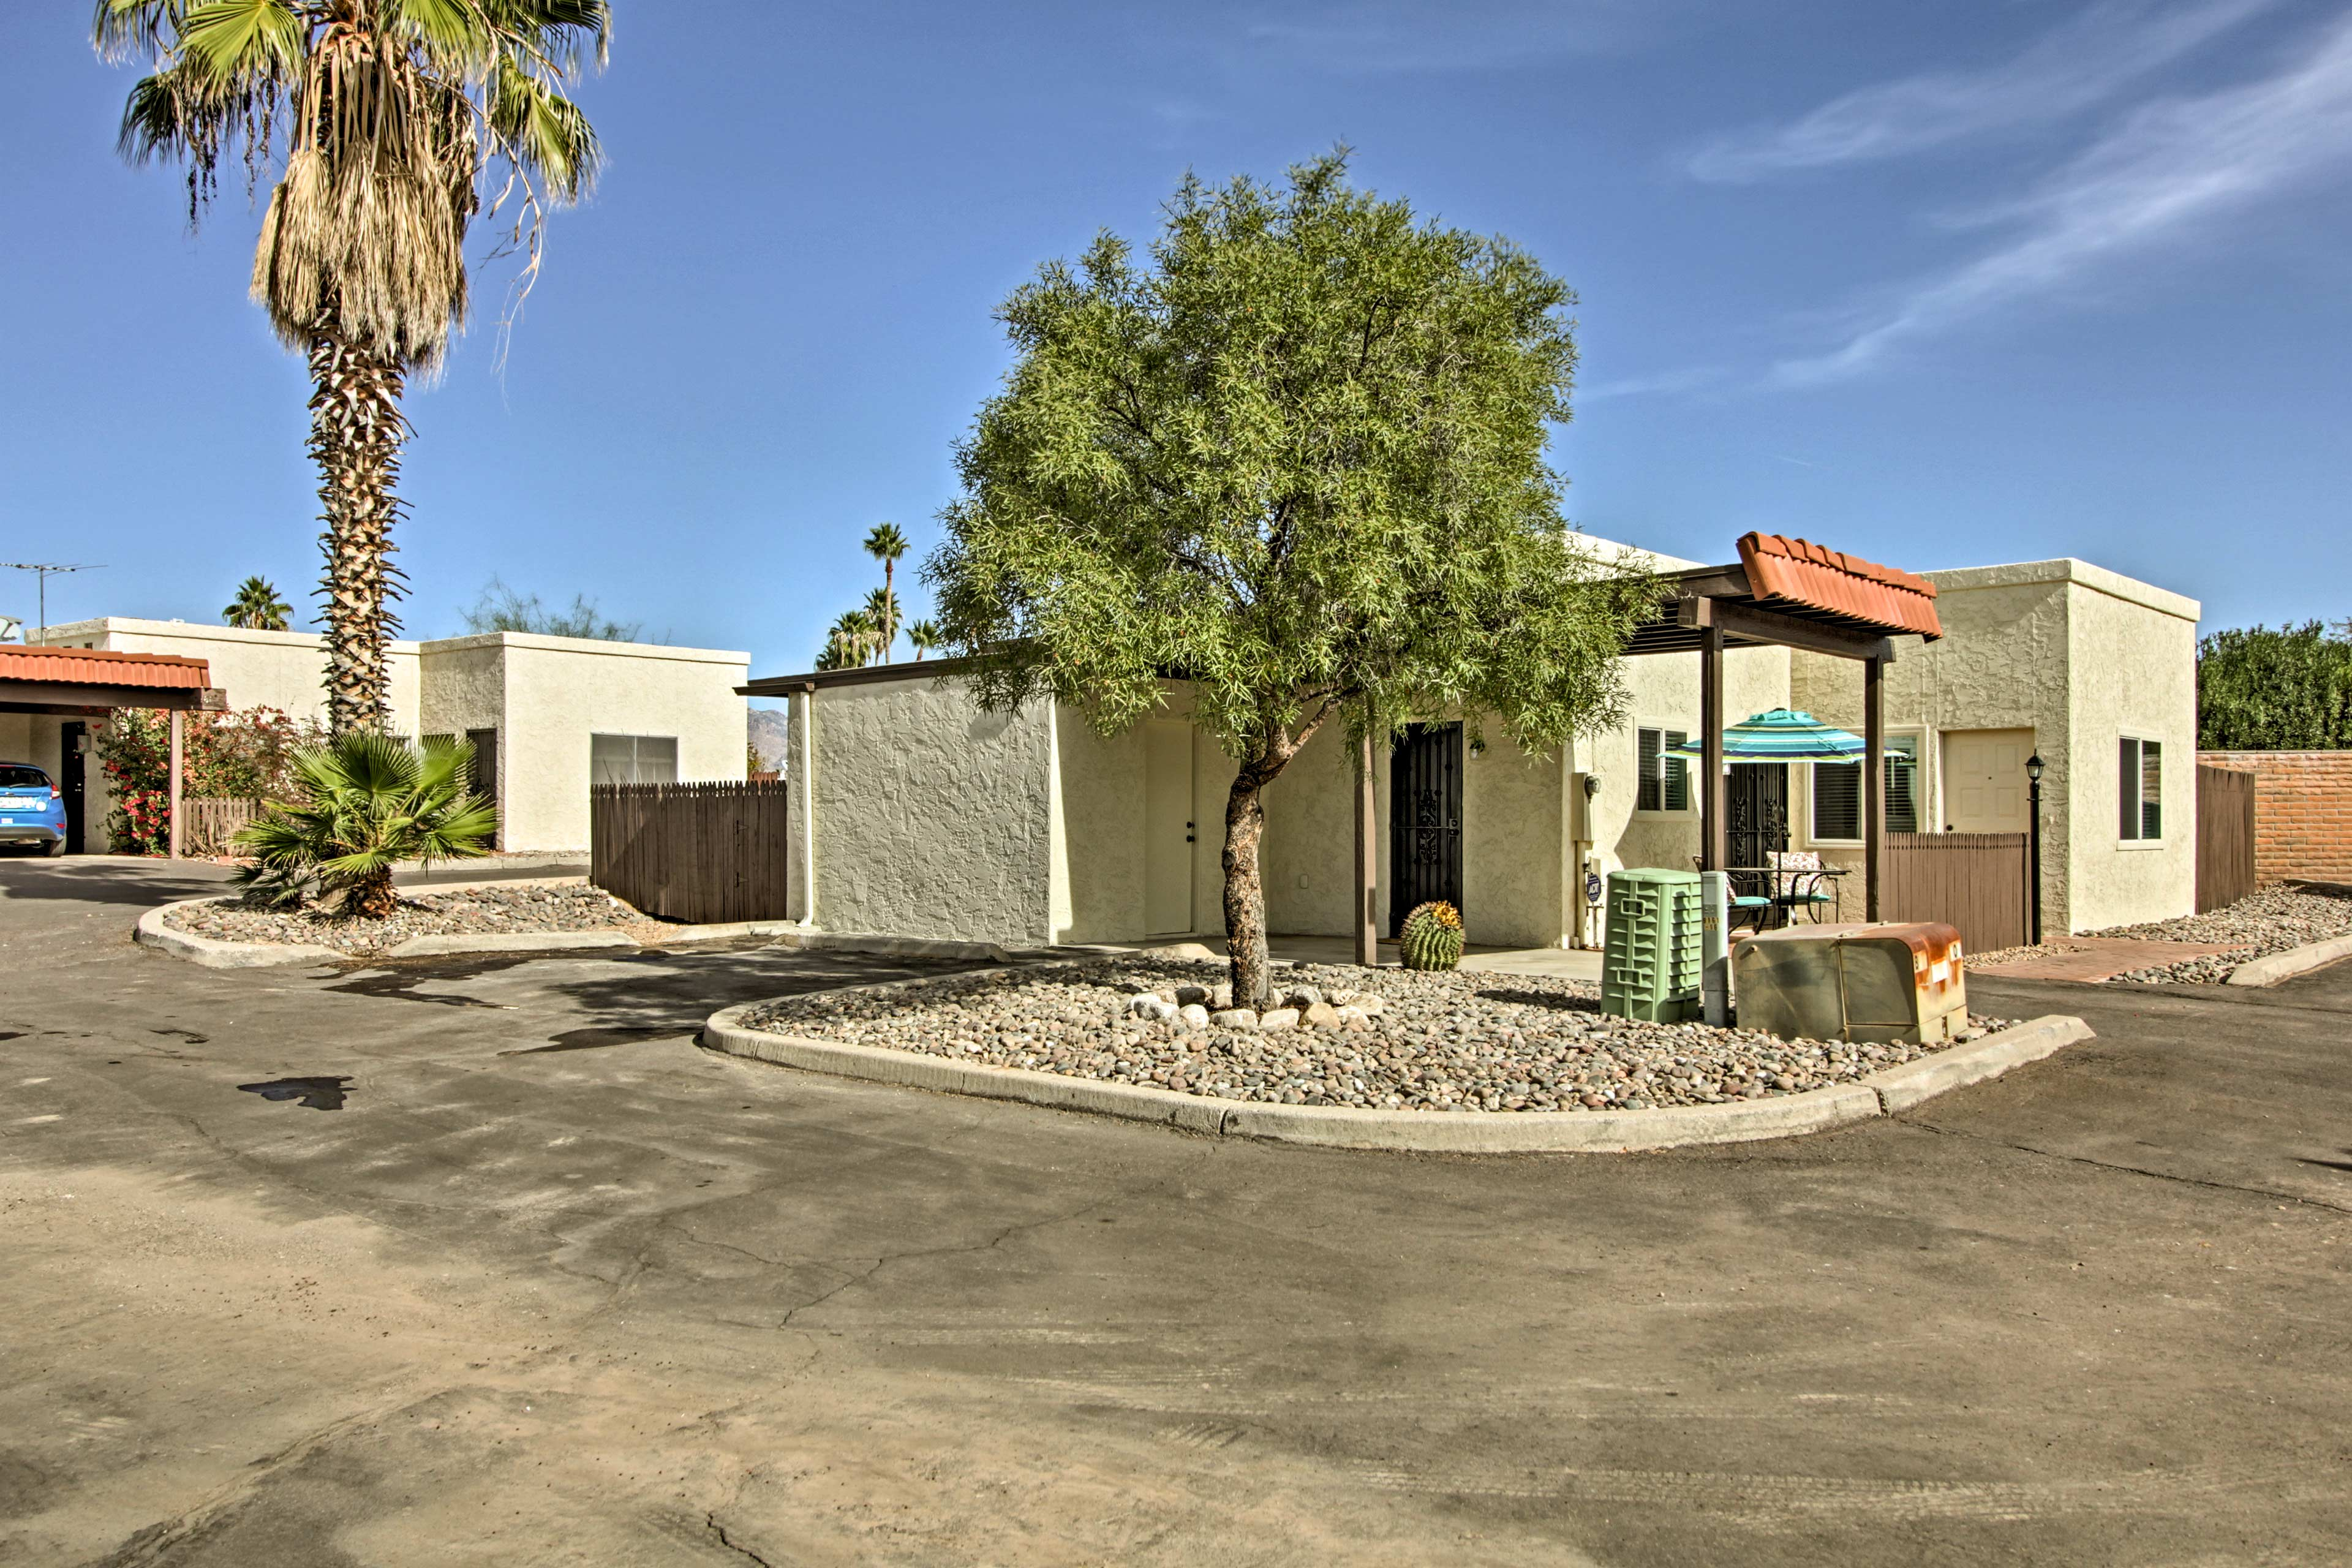 Make this home your next Tuscon tradition for years to come!